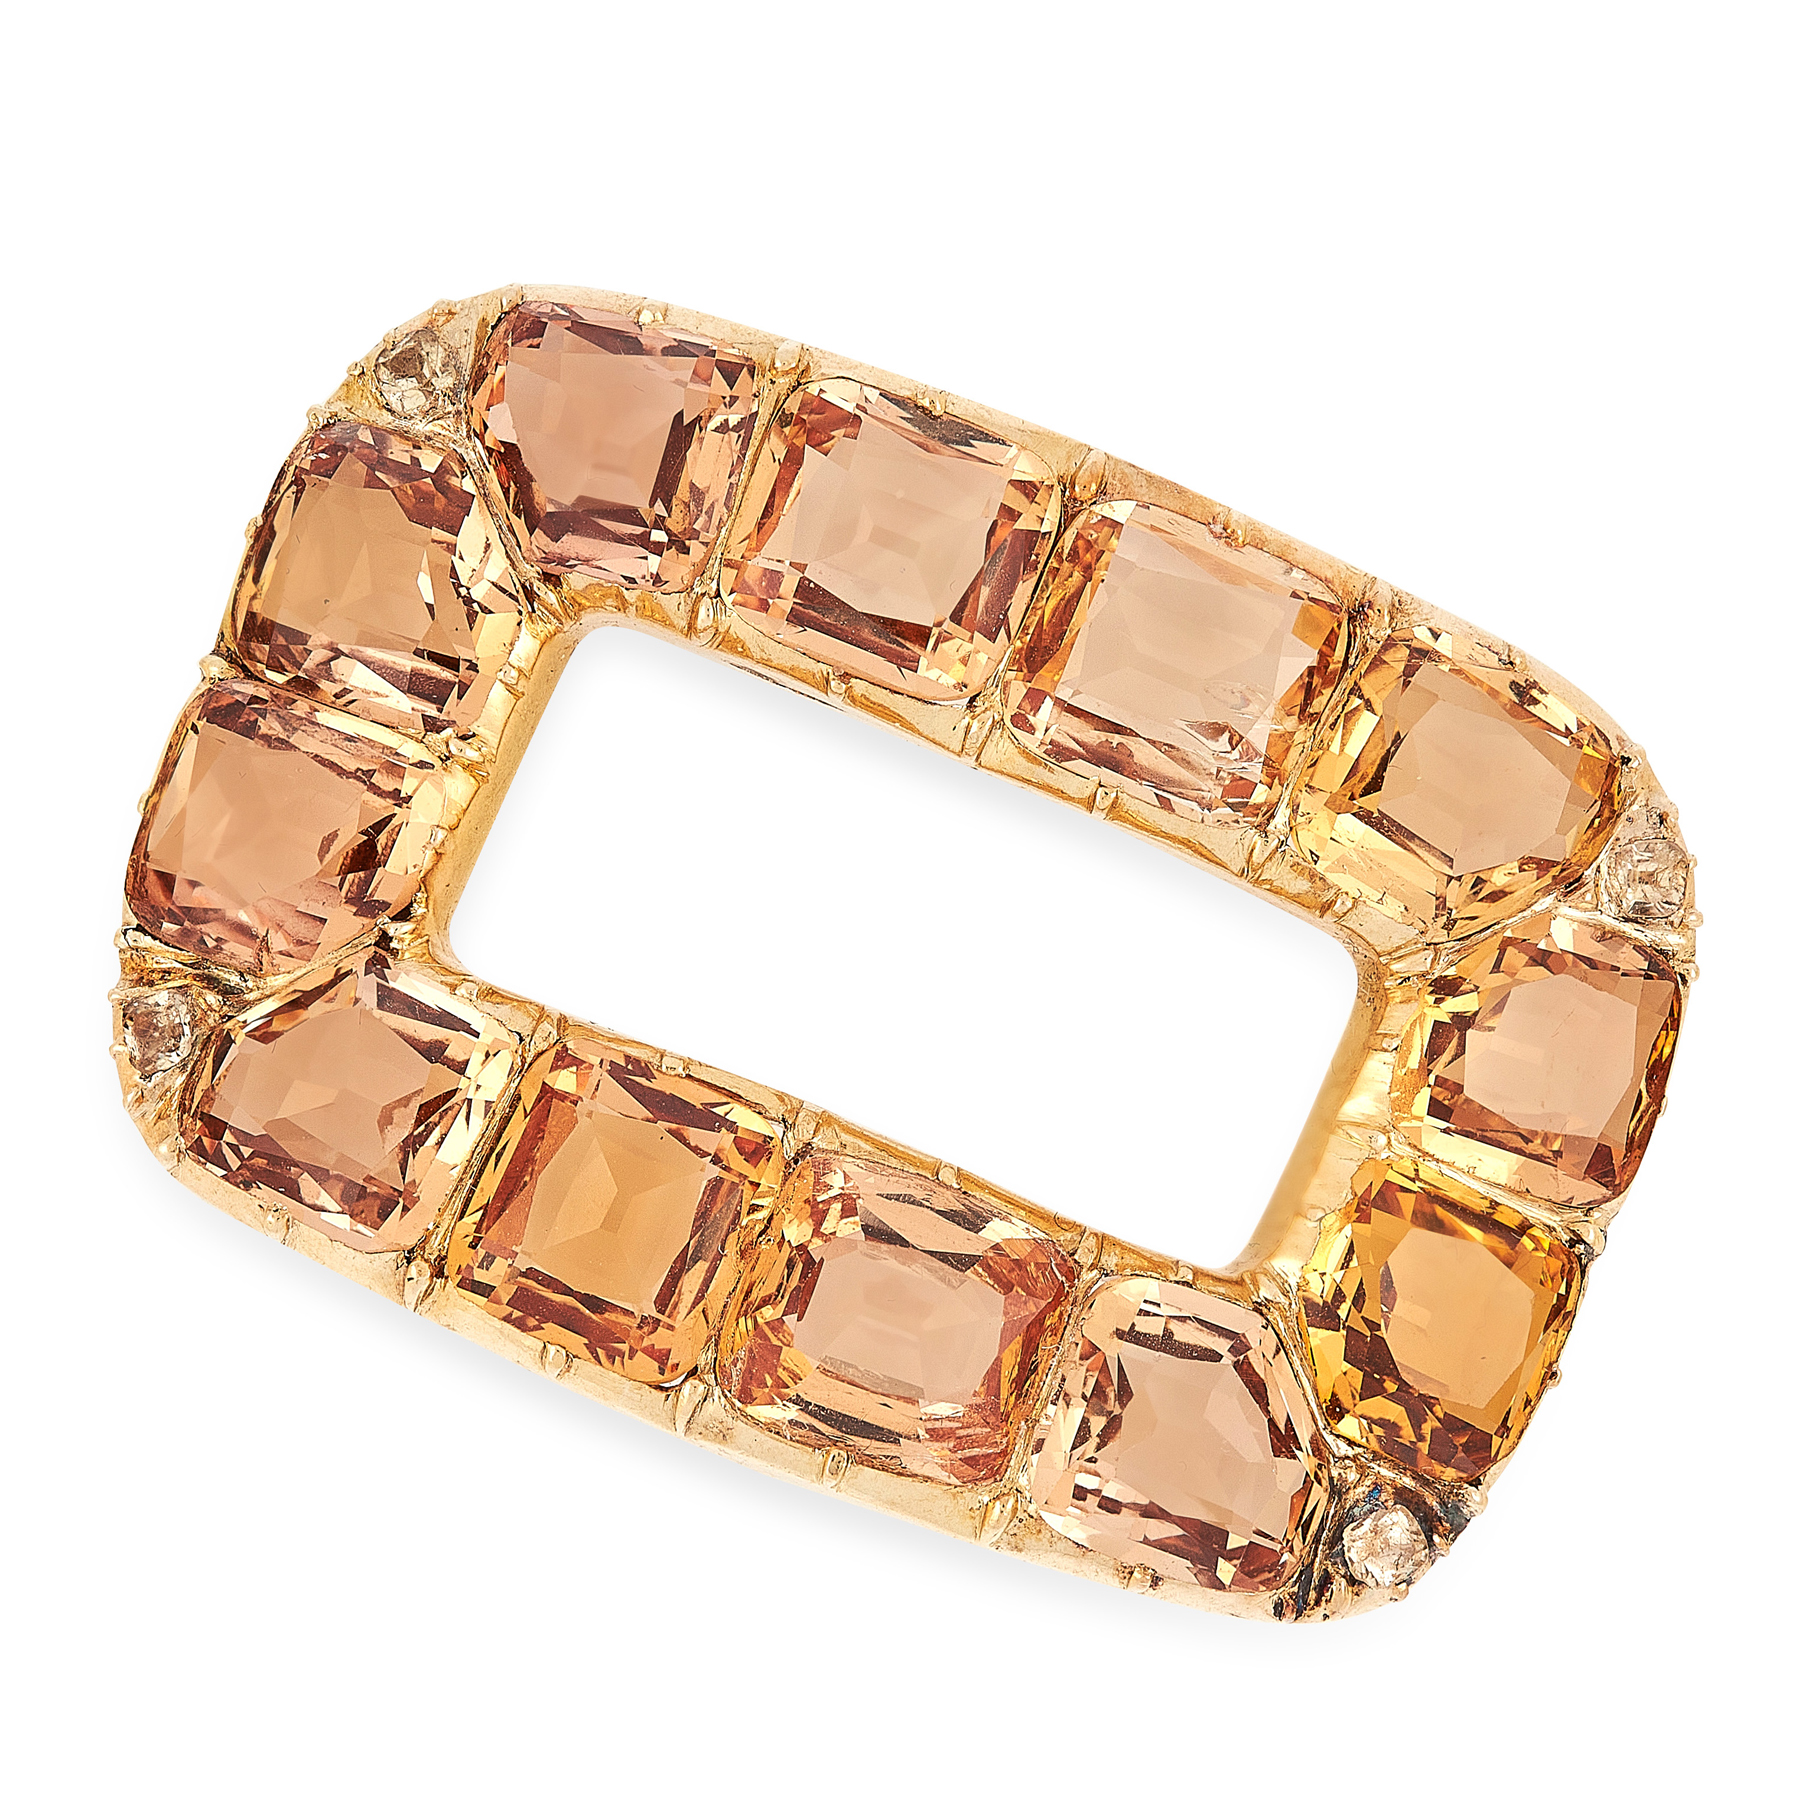 AN ANTIQUE IMPERIAL TOPAZ AND DIAMOND BUCKLE, 19TH CENTURY in yellow gold, of rounded rectangular